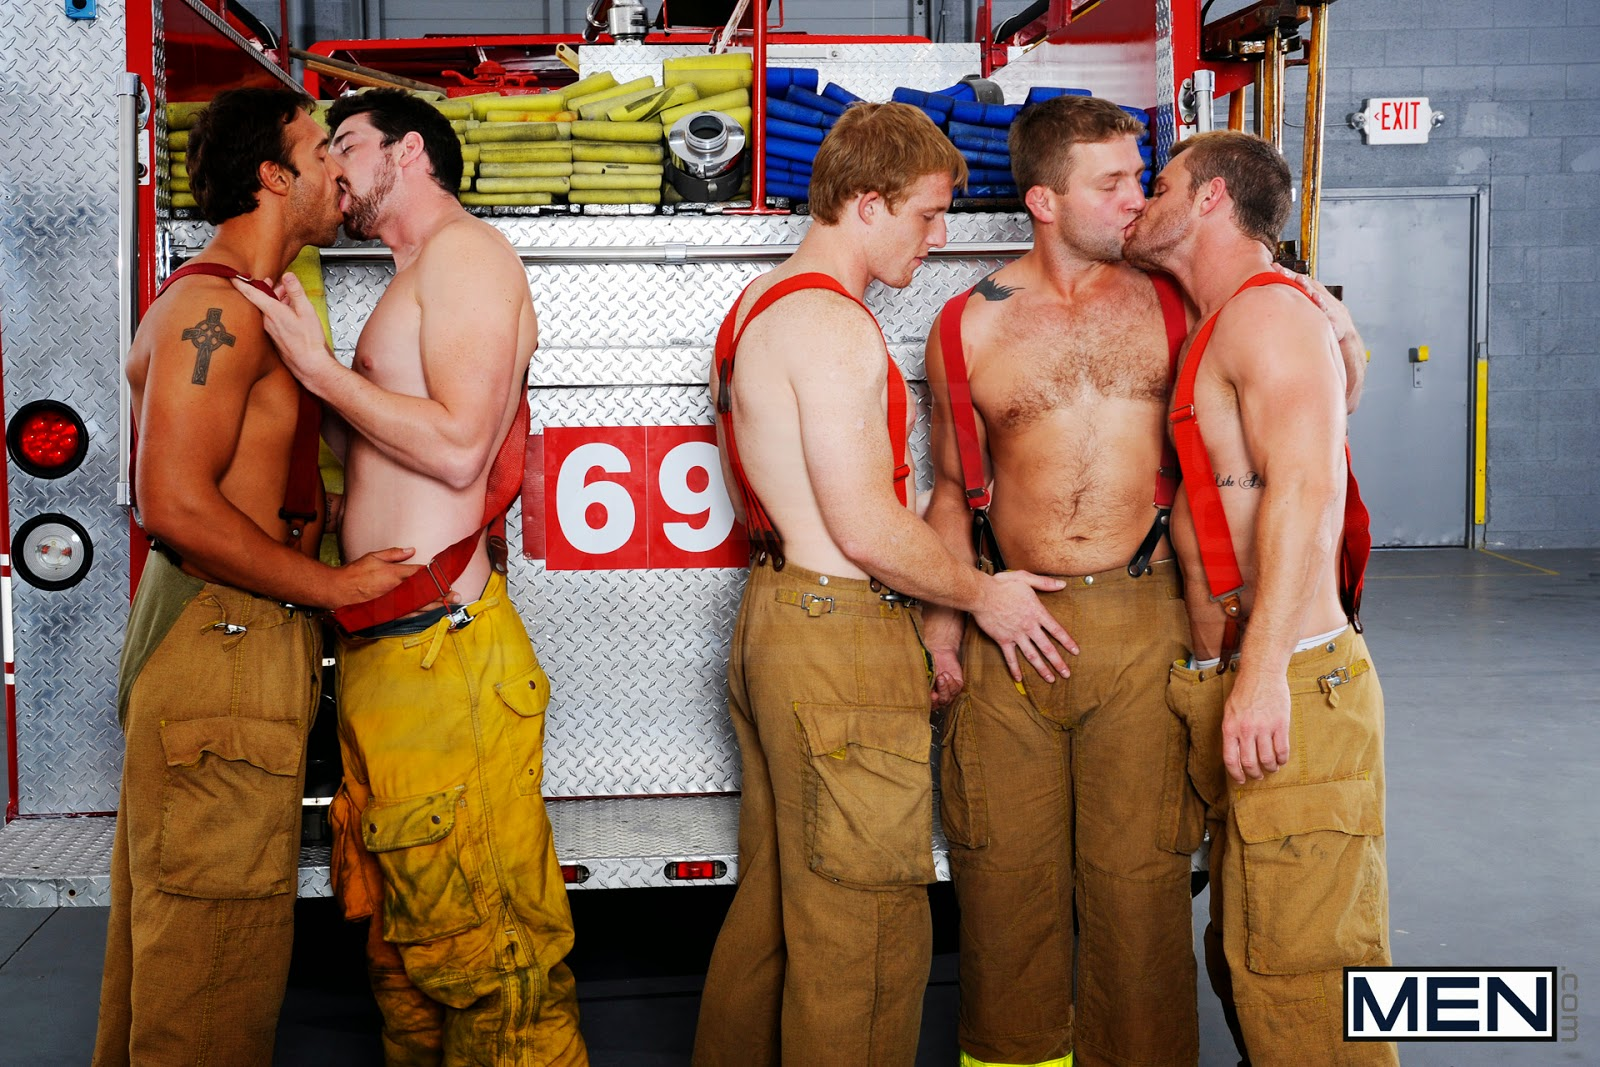 Hd fireman xxx pic exposed video